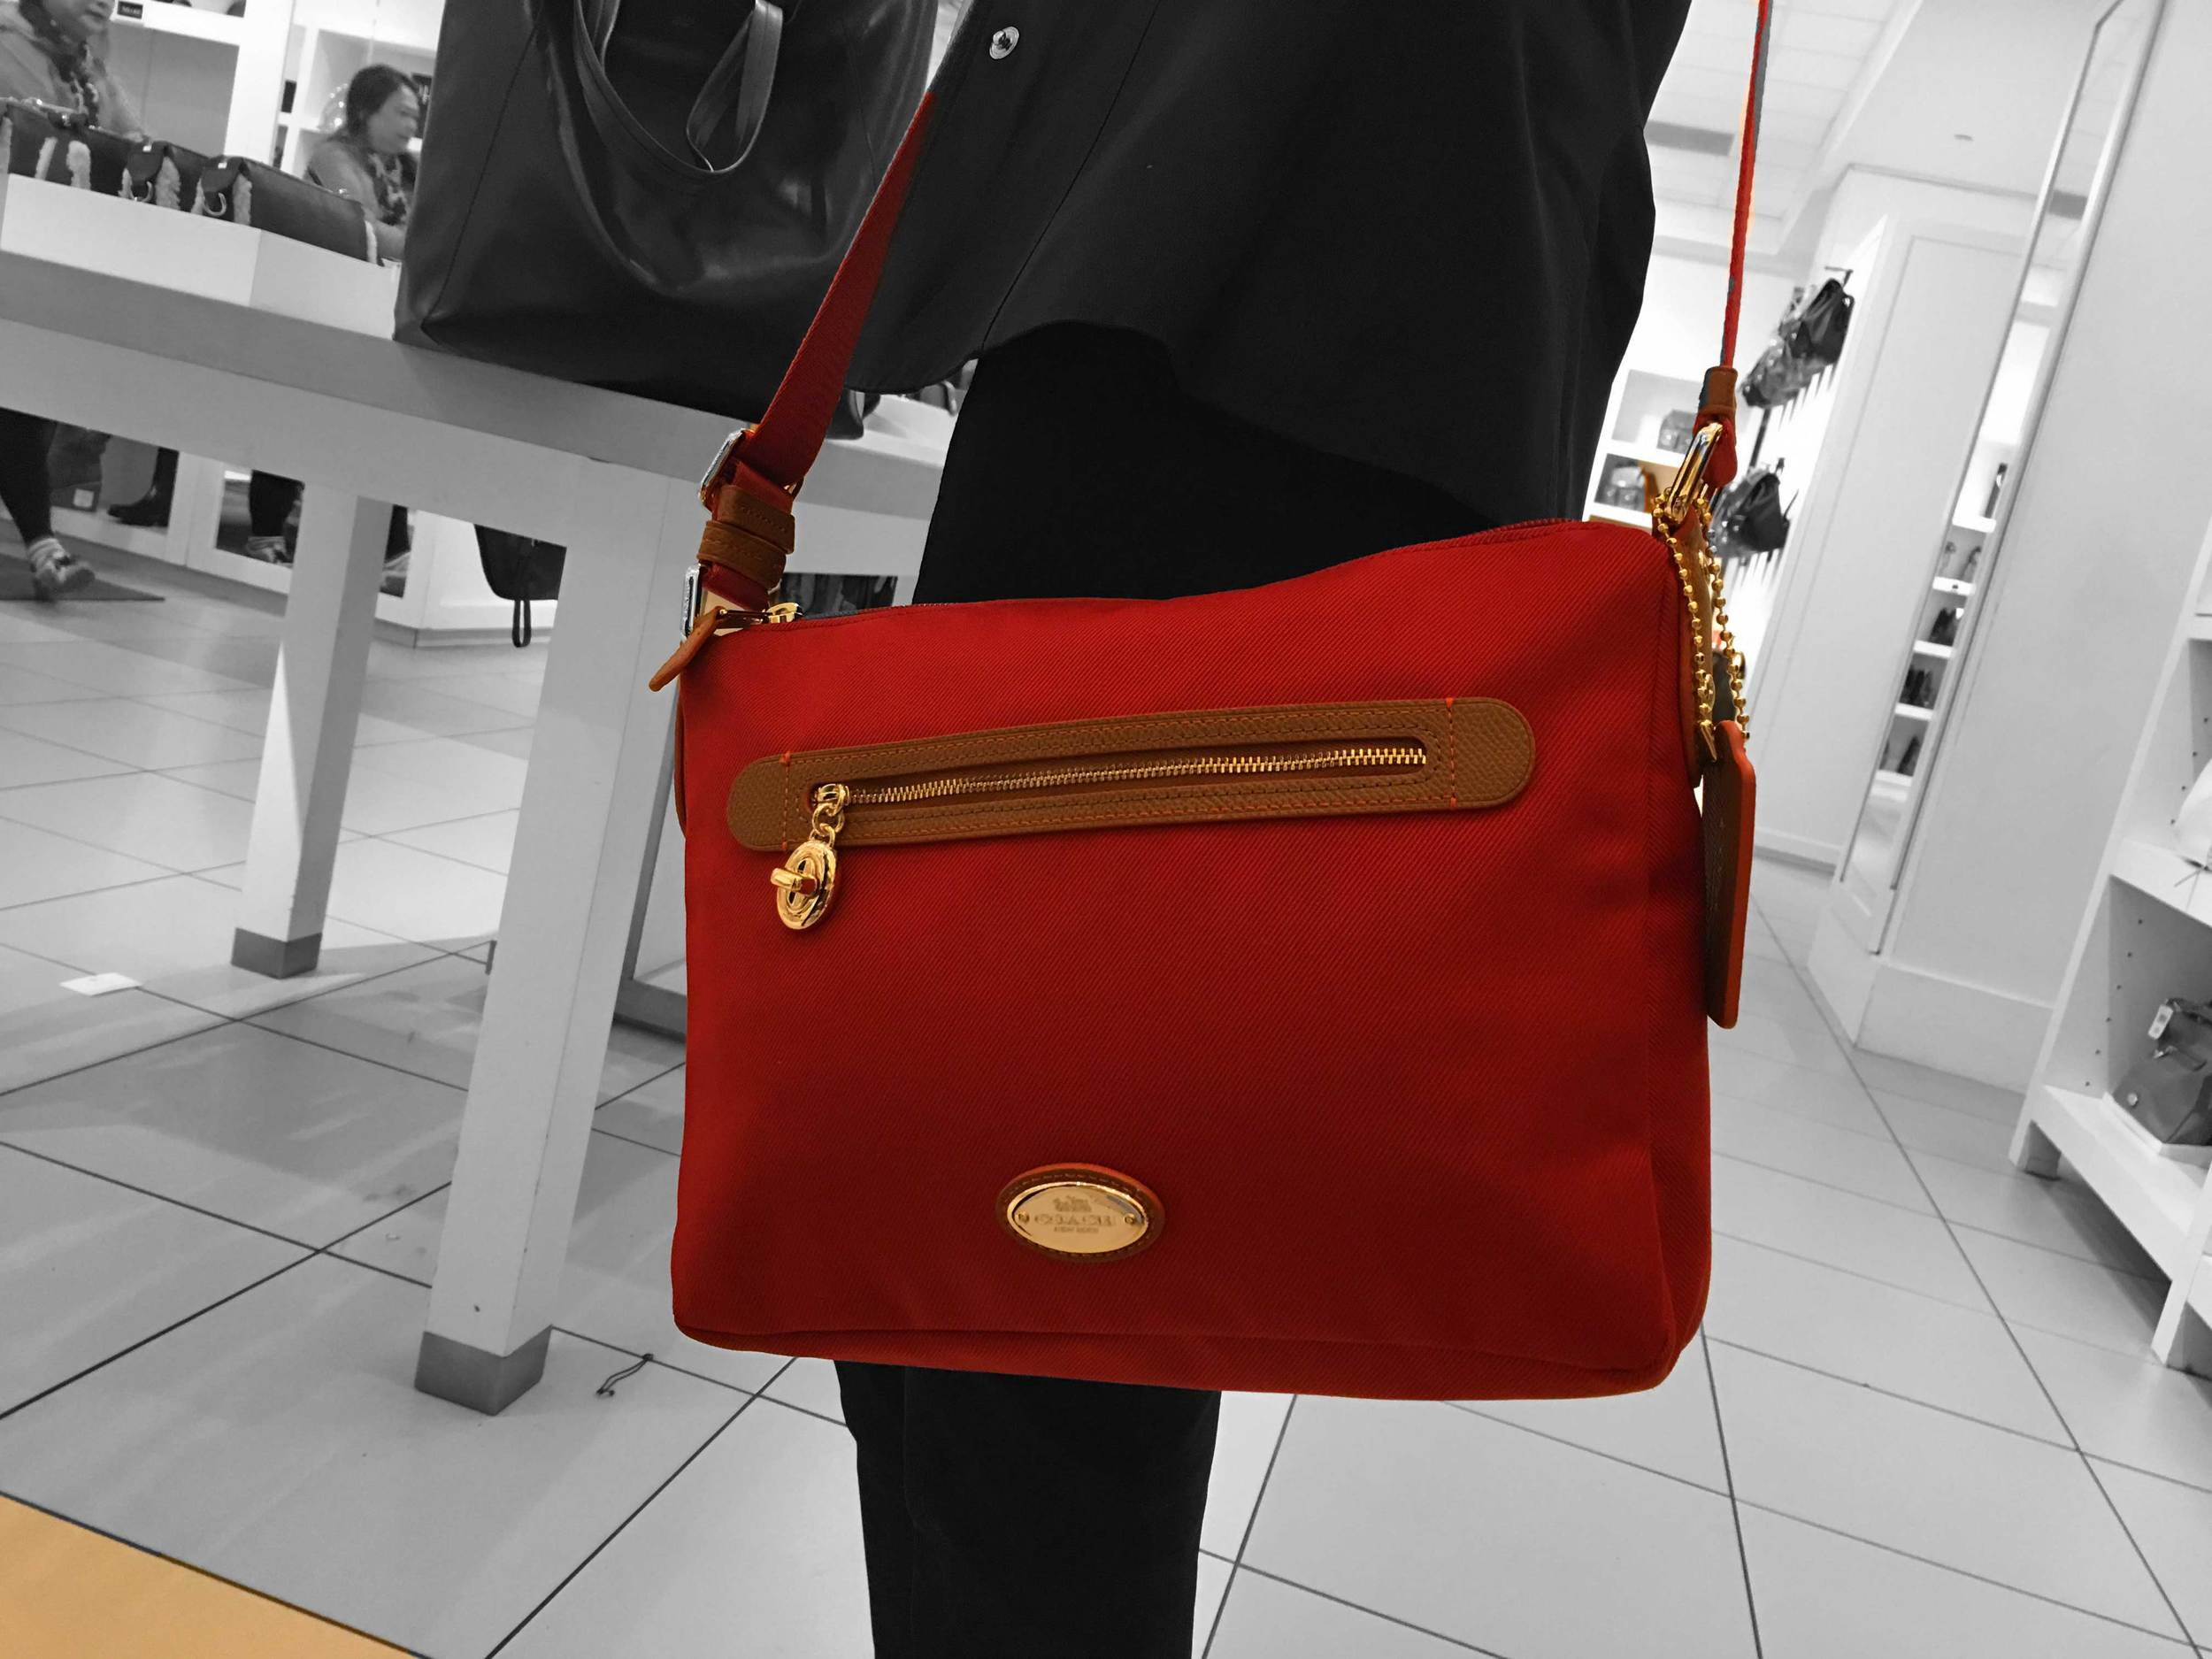 My sister-in-law has babies so this cross body should be convenient and I love the color--it's trending now! Coach Store, Citadel Outlets, LA, CA, USA. Image©gunjanvirk